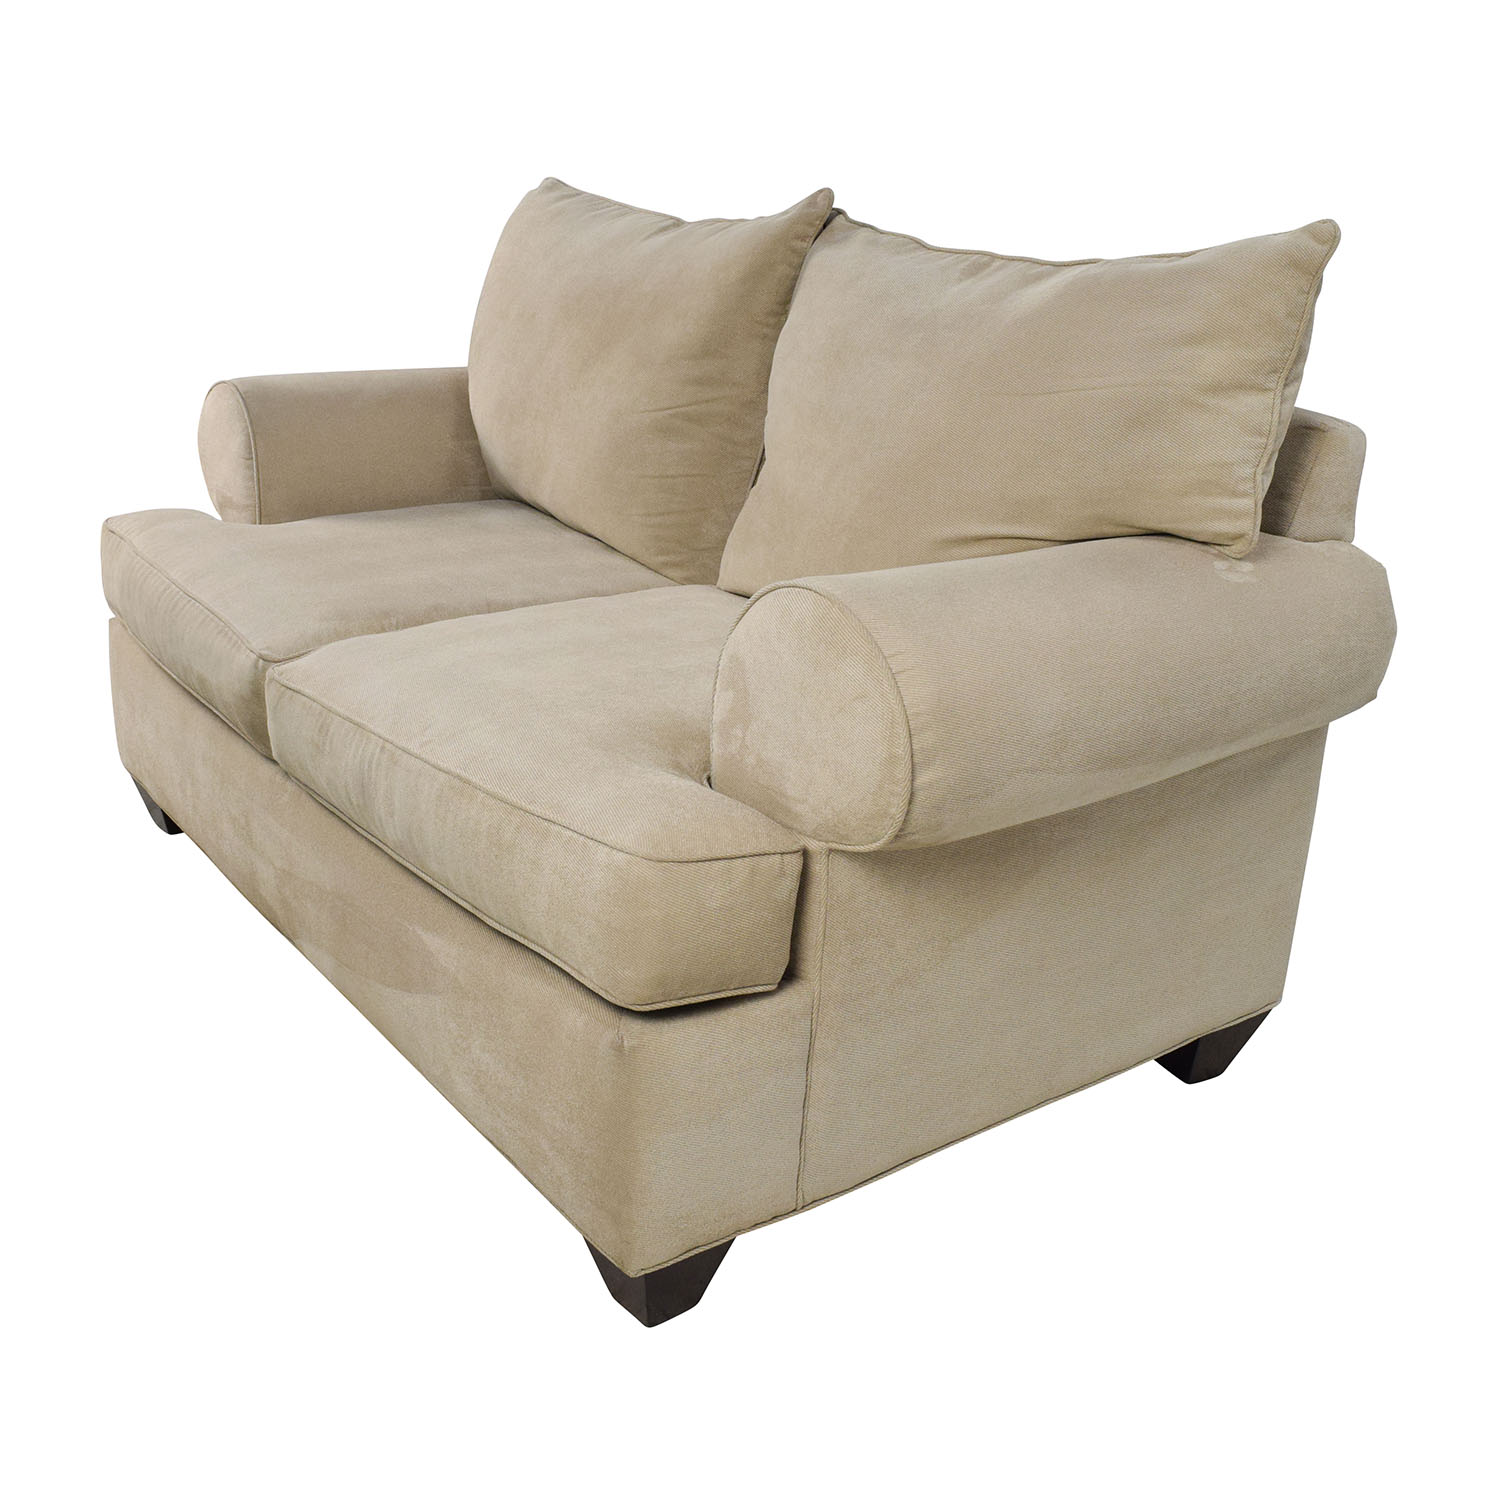 Beige Microfiber Sofa The Features Of A Microfiber